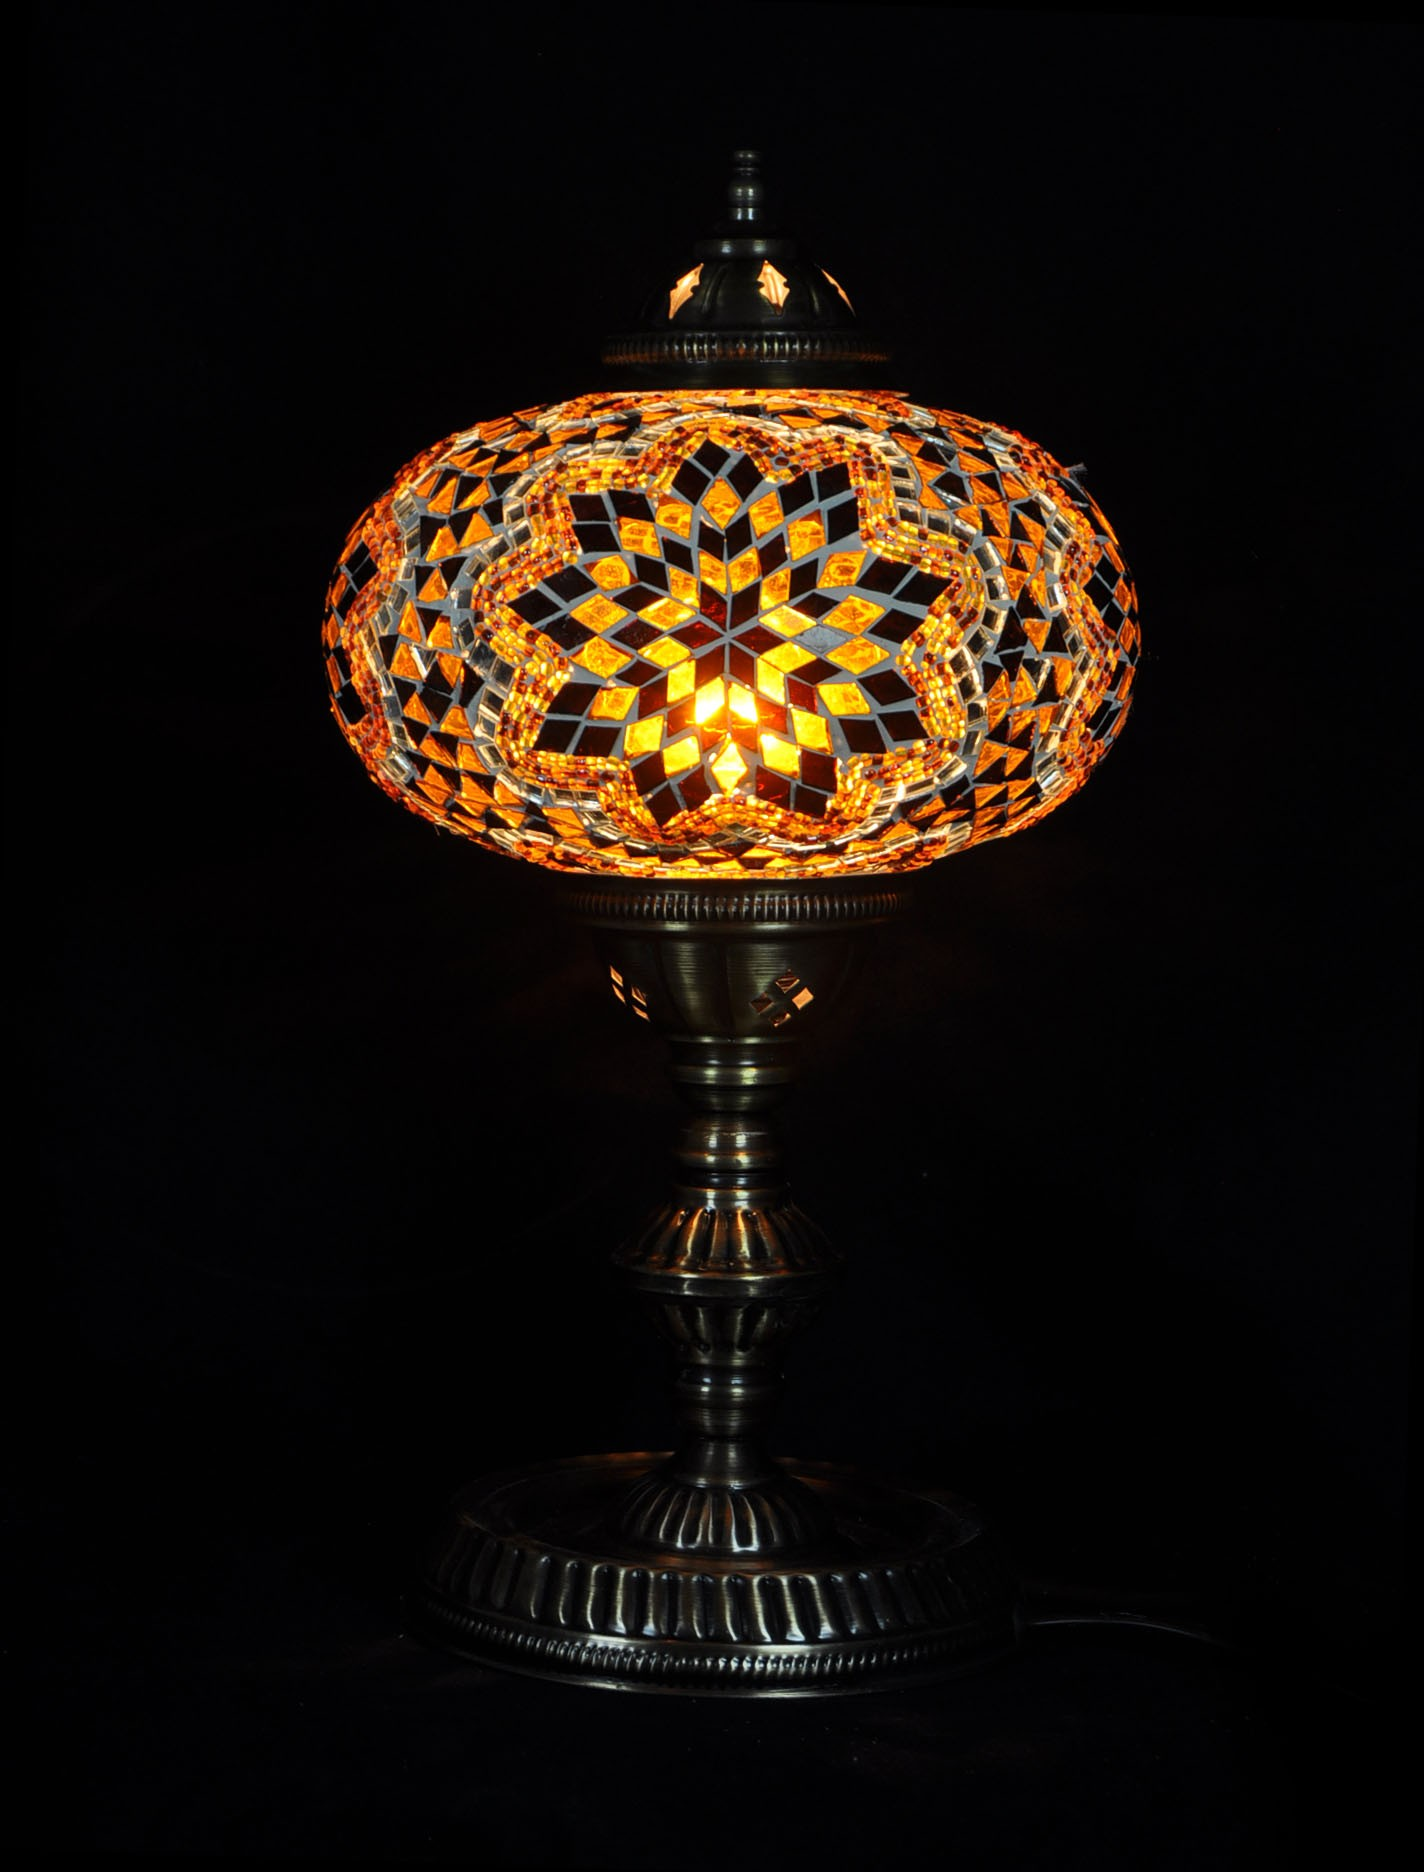 holder barrel luxury stand patterns shade glass full colorful lamp decorative astonishing furniture leaves table size of gorham lamps or cracker mosaic night with brass flower